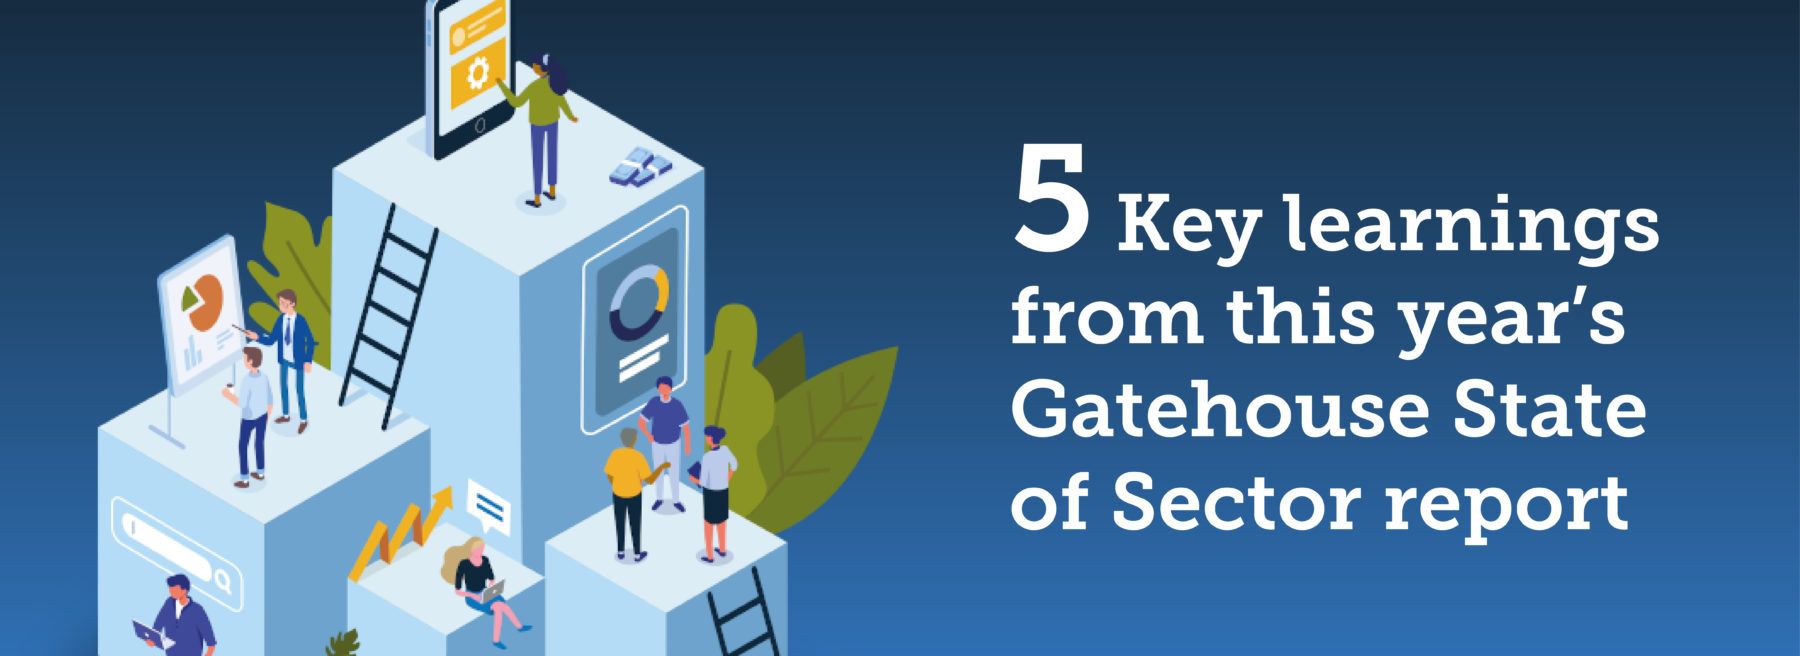 5 key learnings from this year's Gatehouse State of the Sector report